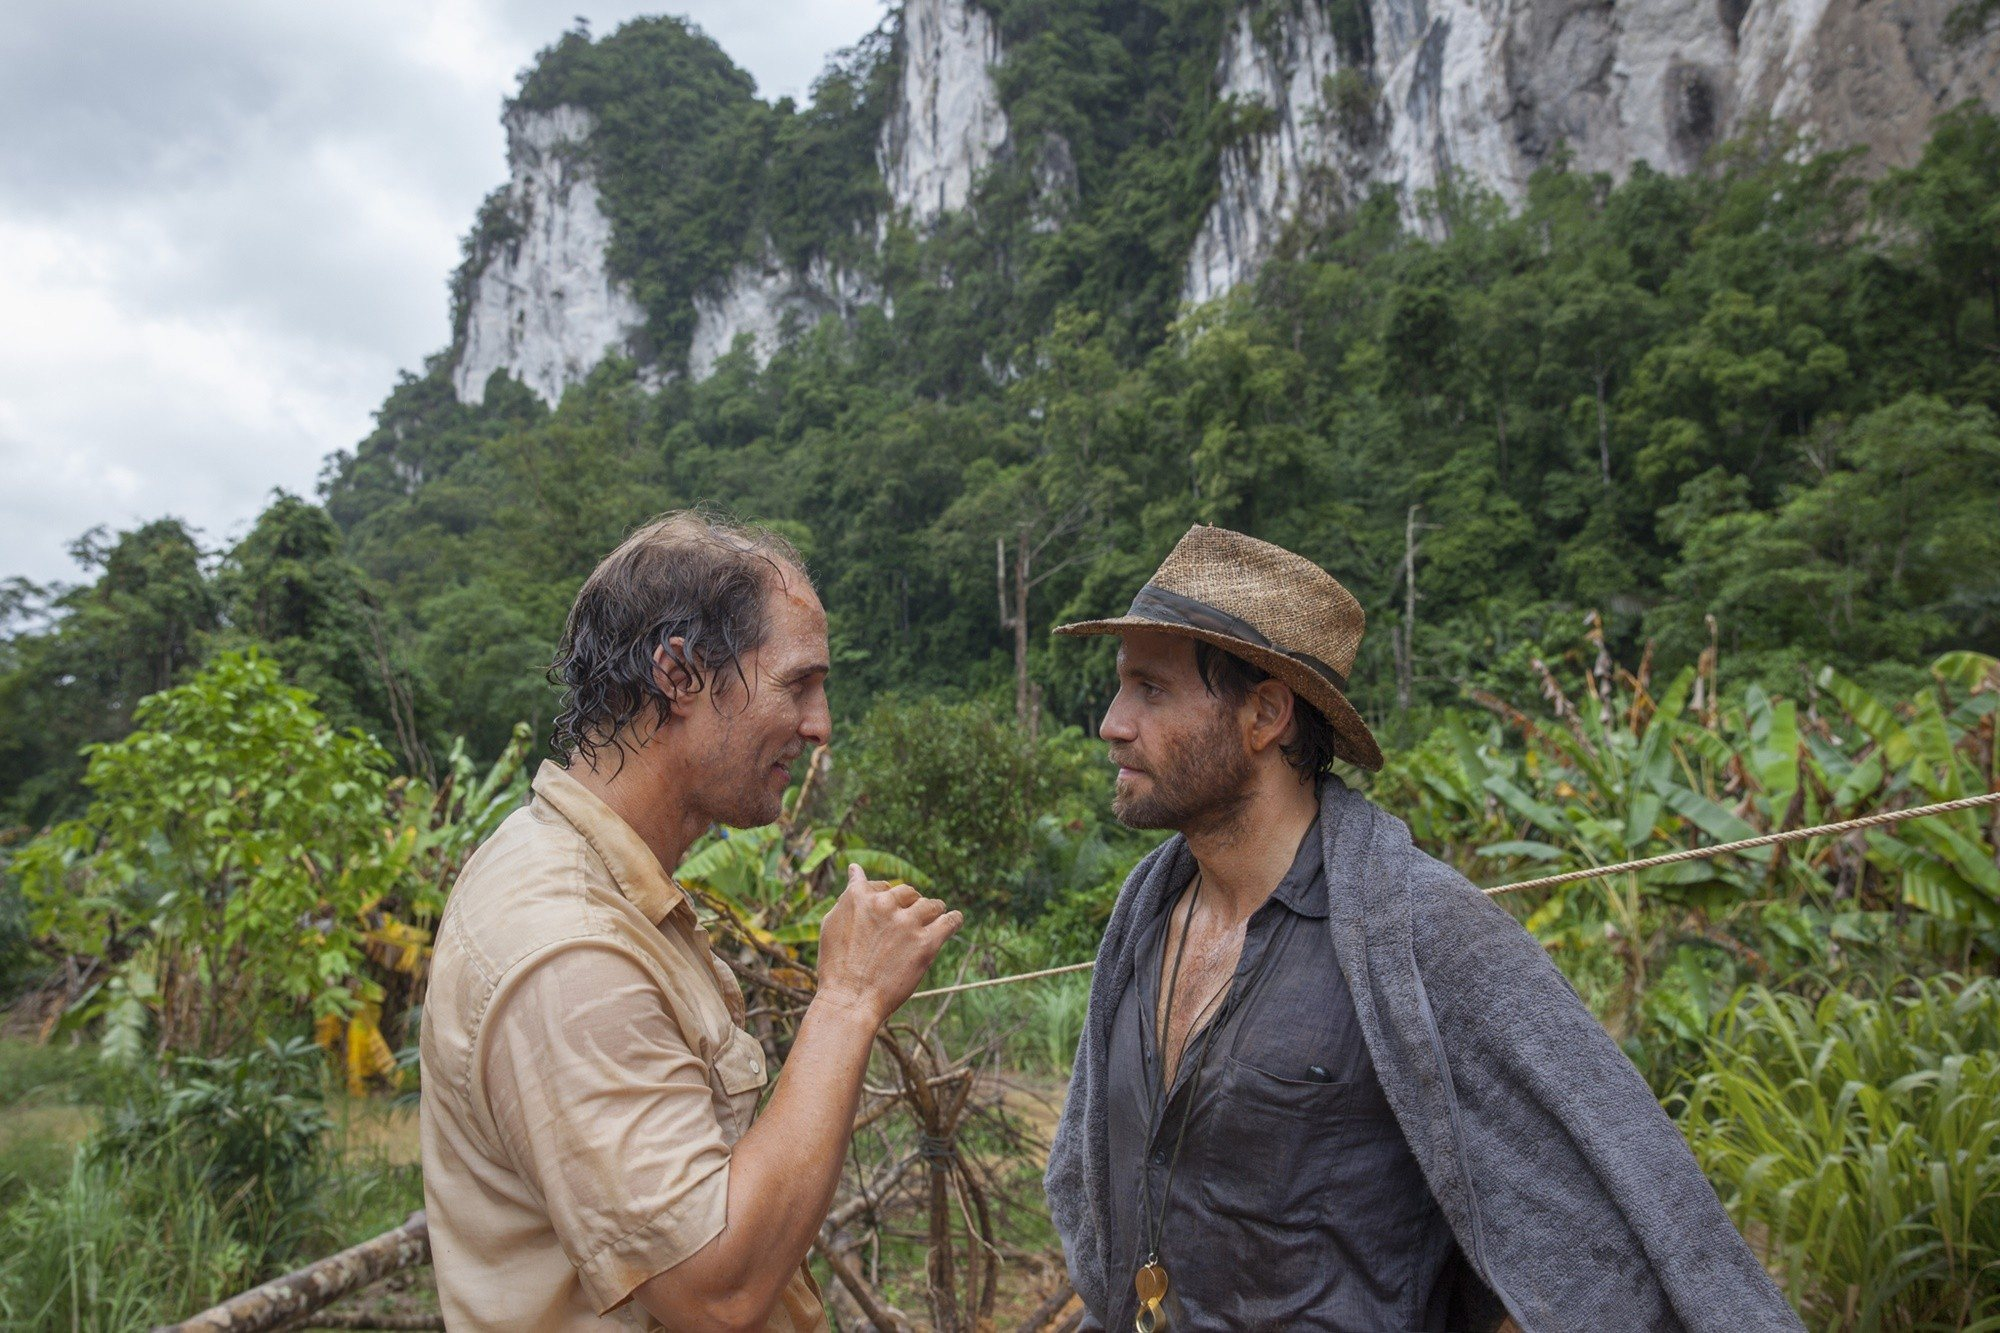 Matthew McConaughey and Edgar Ramírez in 'Gold', directed by Steven Gaghan.